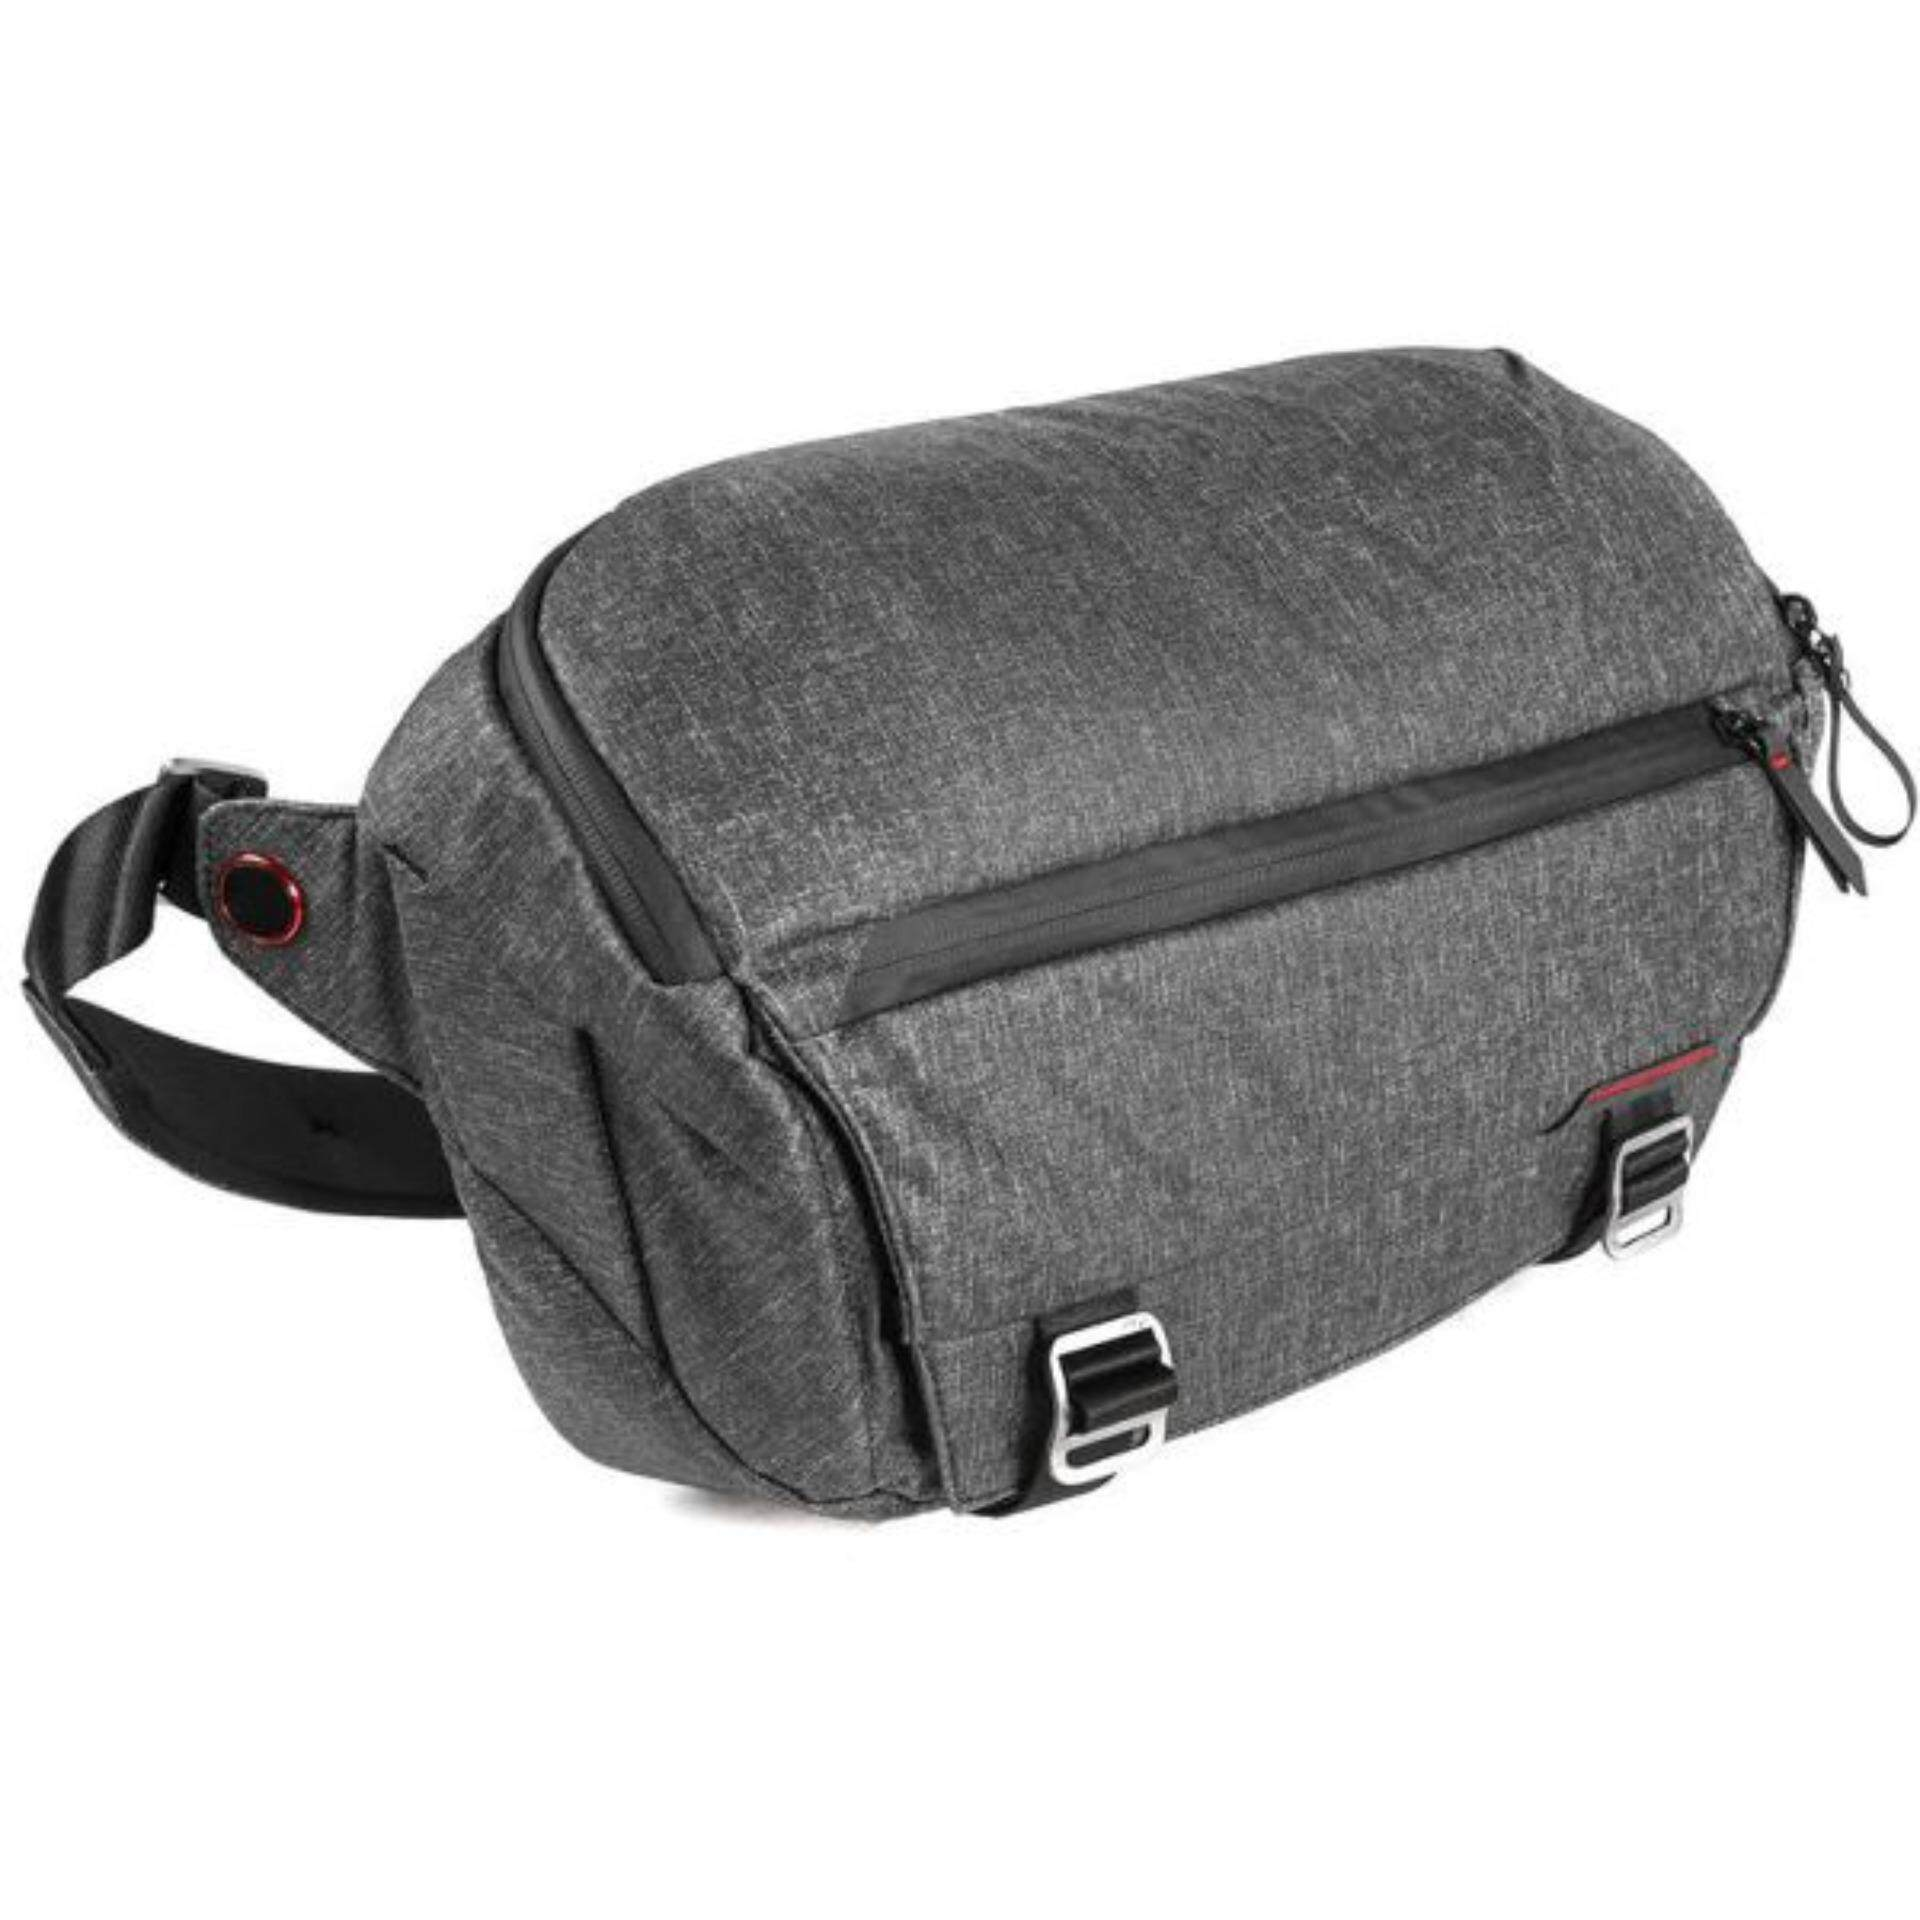 Peak Design Everyday Sling  10L Camera Bag for DSLR & DSLM